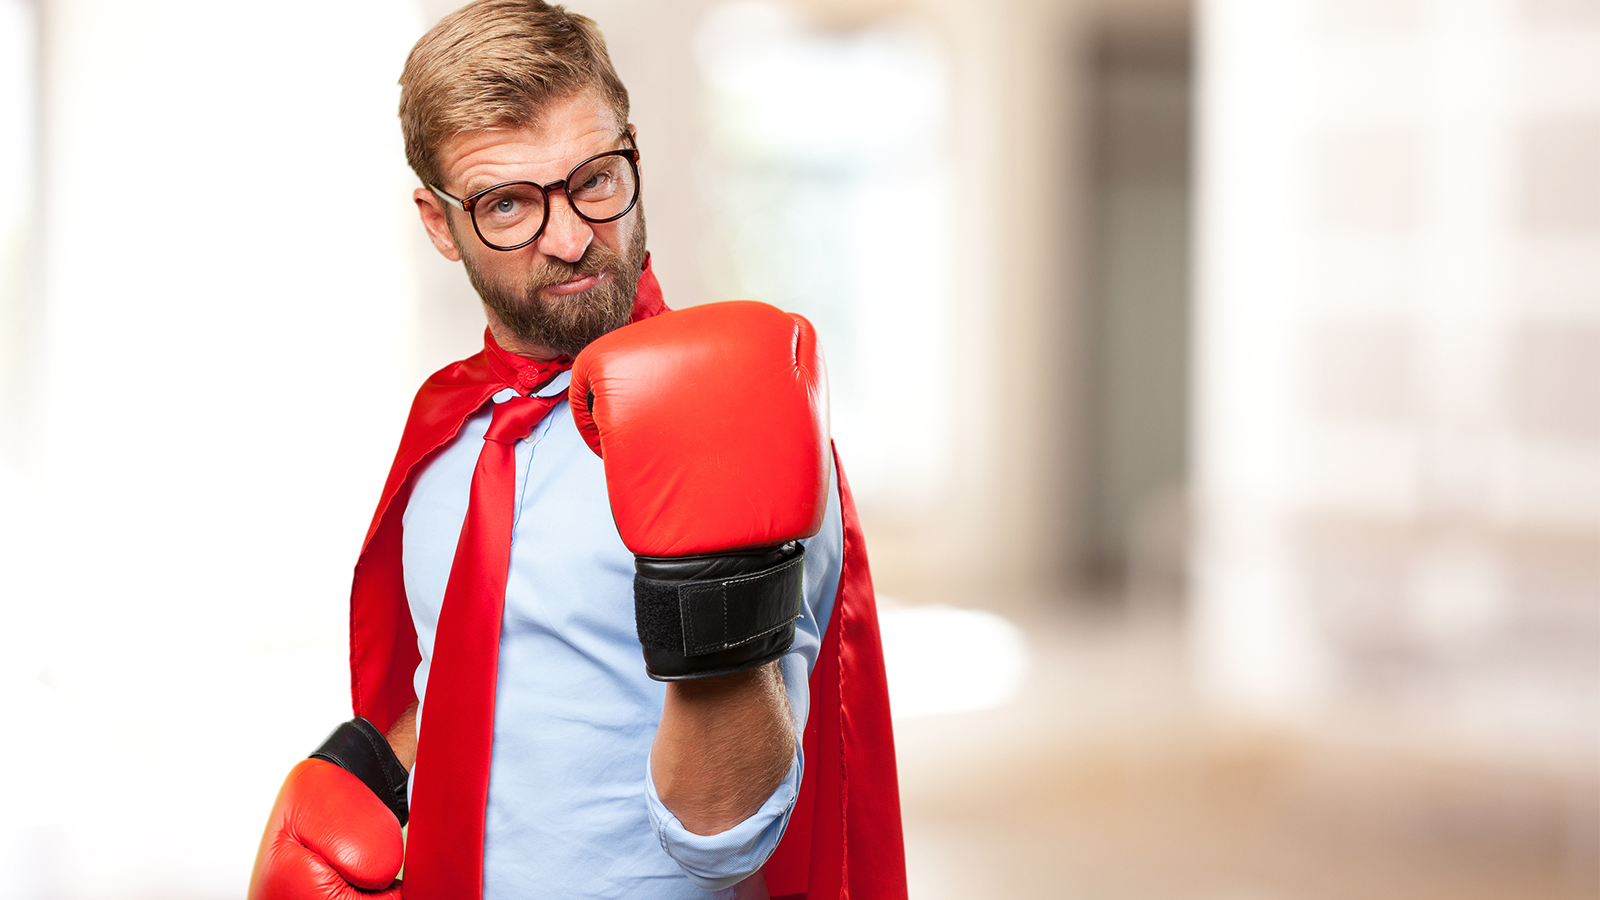 determined-business-man-w-boxing-gloves-and-cape